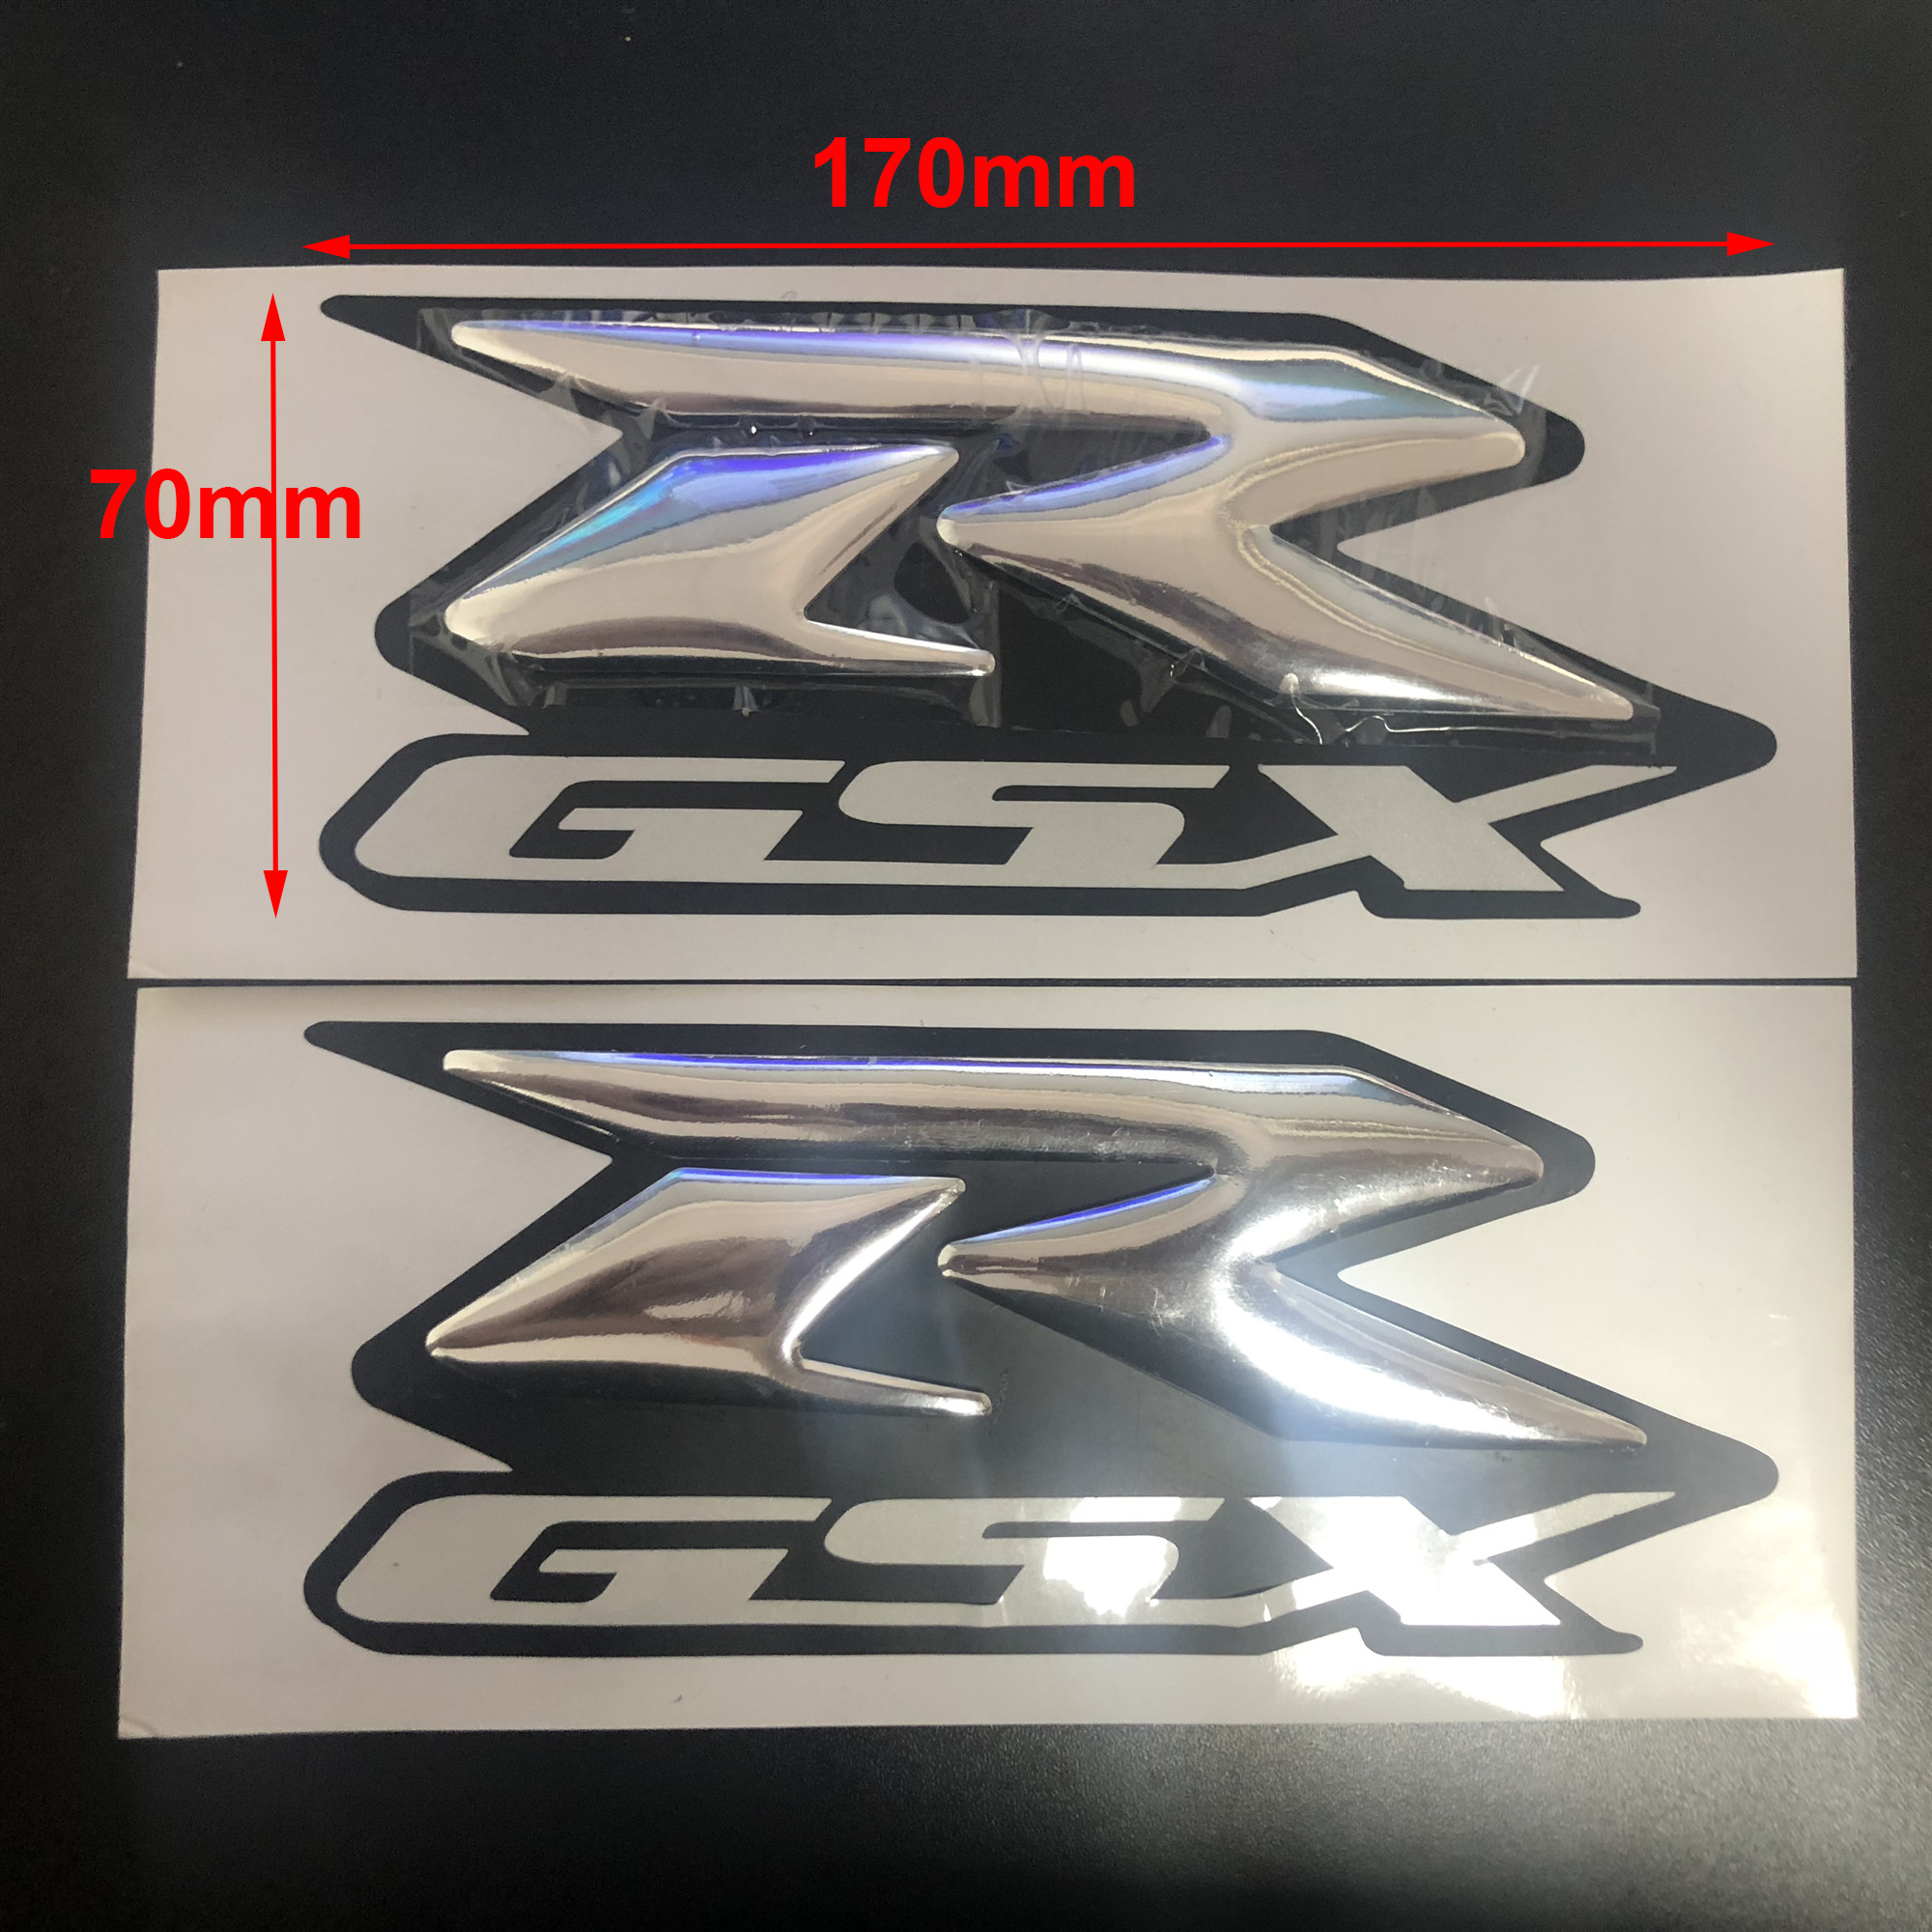 2Pcs Silver Emblem 3D Fender Tank Logo Decal <font><b>Sticker</b></font> For <font><b>Suzuki</b></font> <font><b>GSXR</b></font> <font><b>600</b></font> 750 1000 K1/2/3/4/5/6/7/8/9 Motorcycle/Cruisers/Chopper image